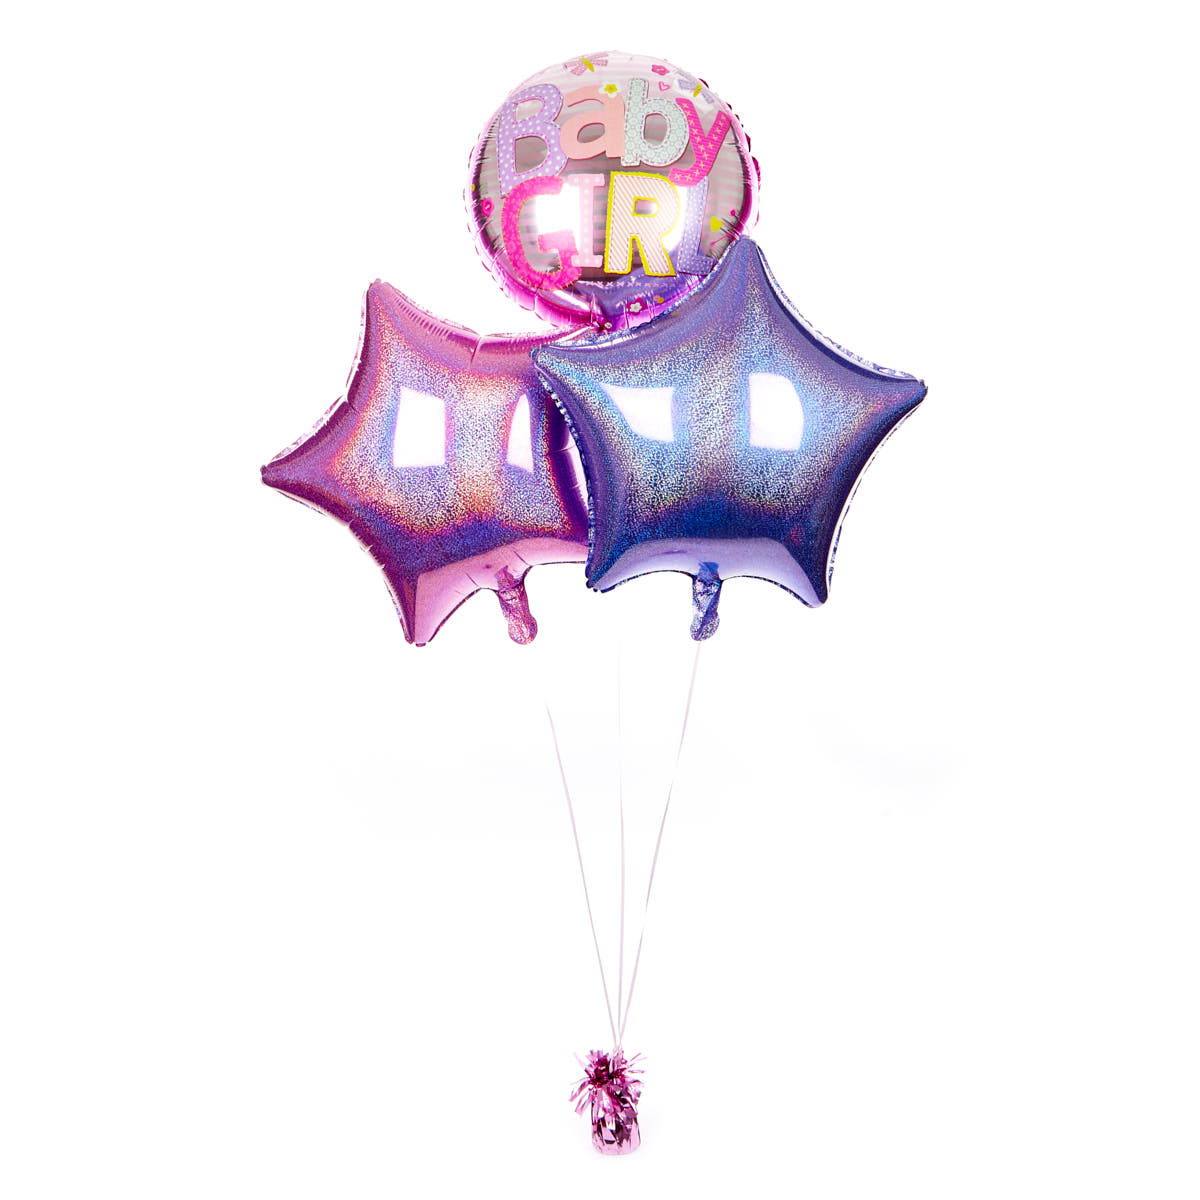 Pink and Lilac Baby Girl Balloon Bouquet - DELIVERED INFLATED!